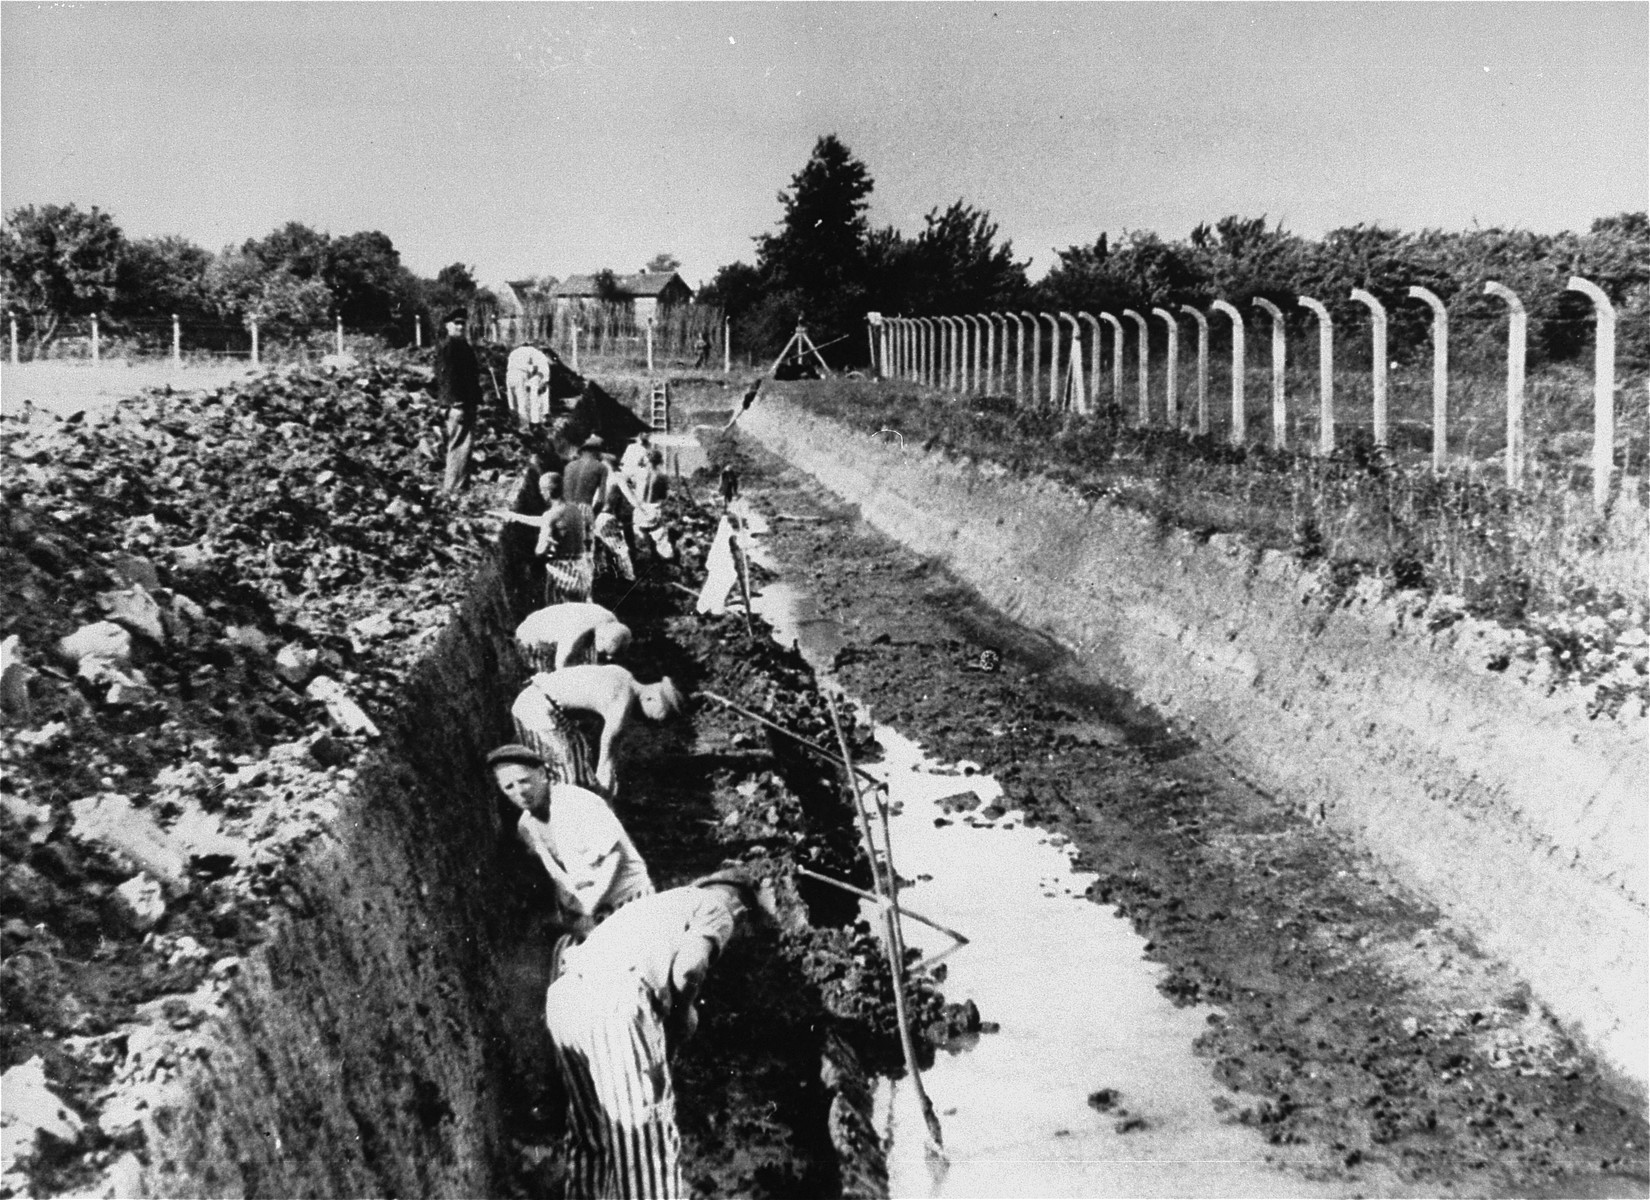 Prisoners at forced labor in the Neuengamme concentration camp.